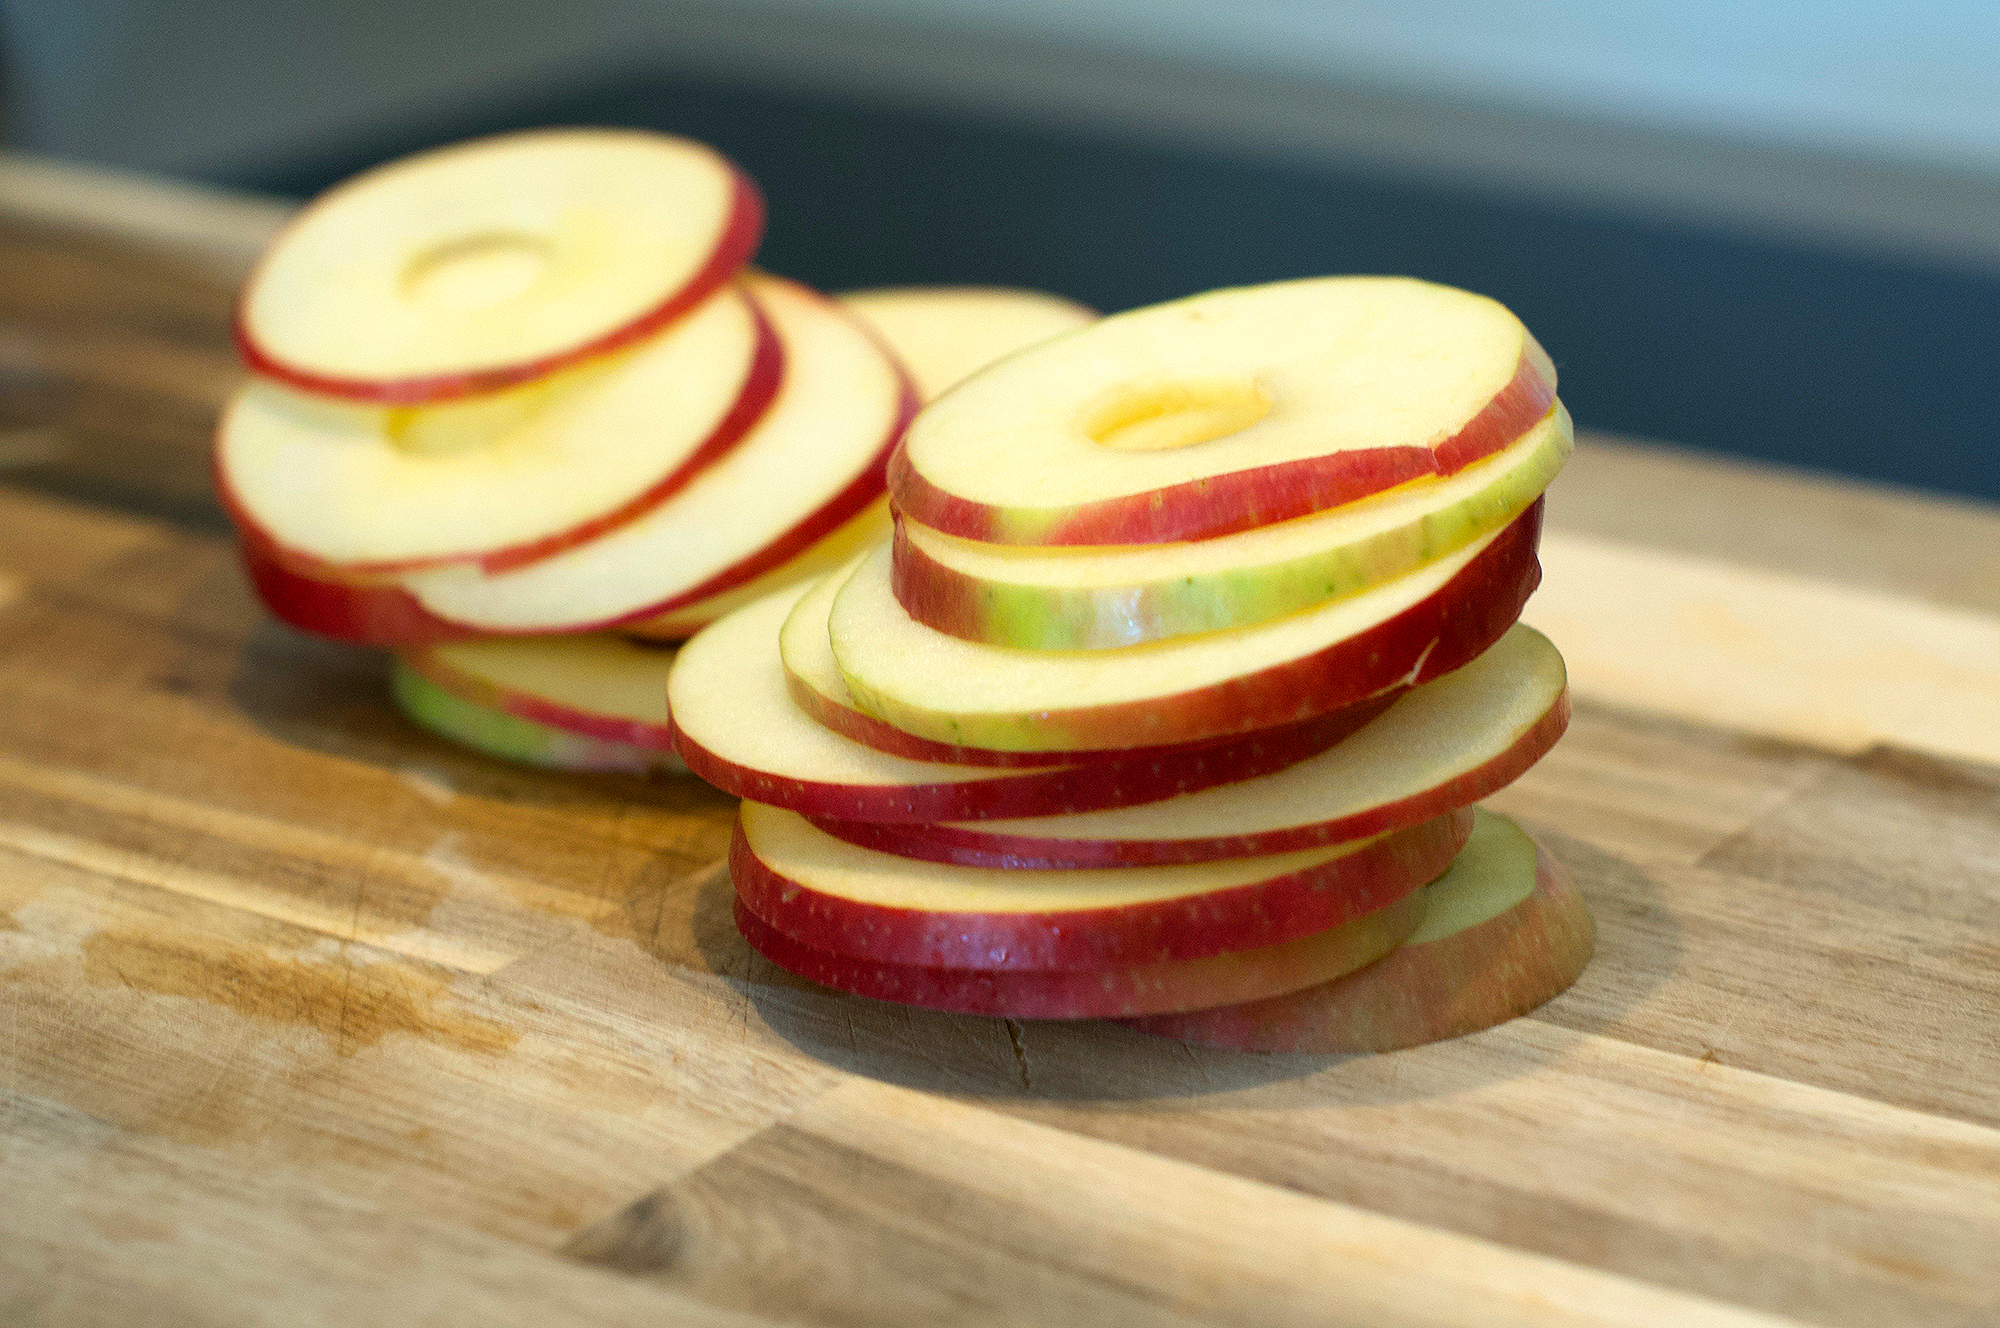 Cored and sliced pink lady apples on wooden chopping board